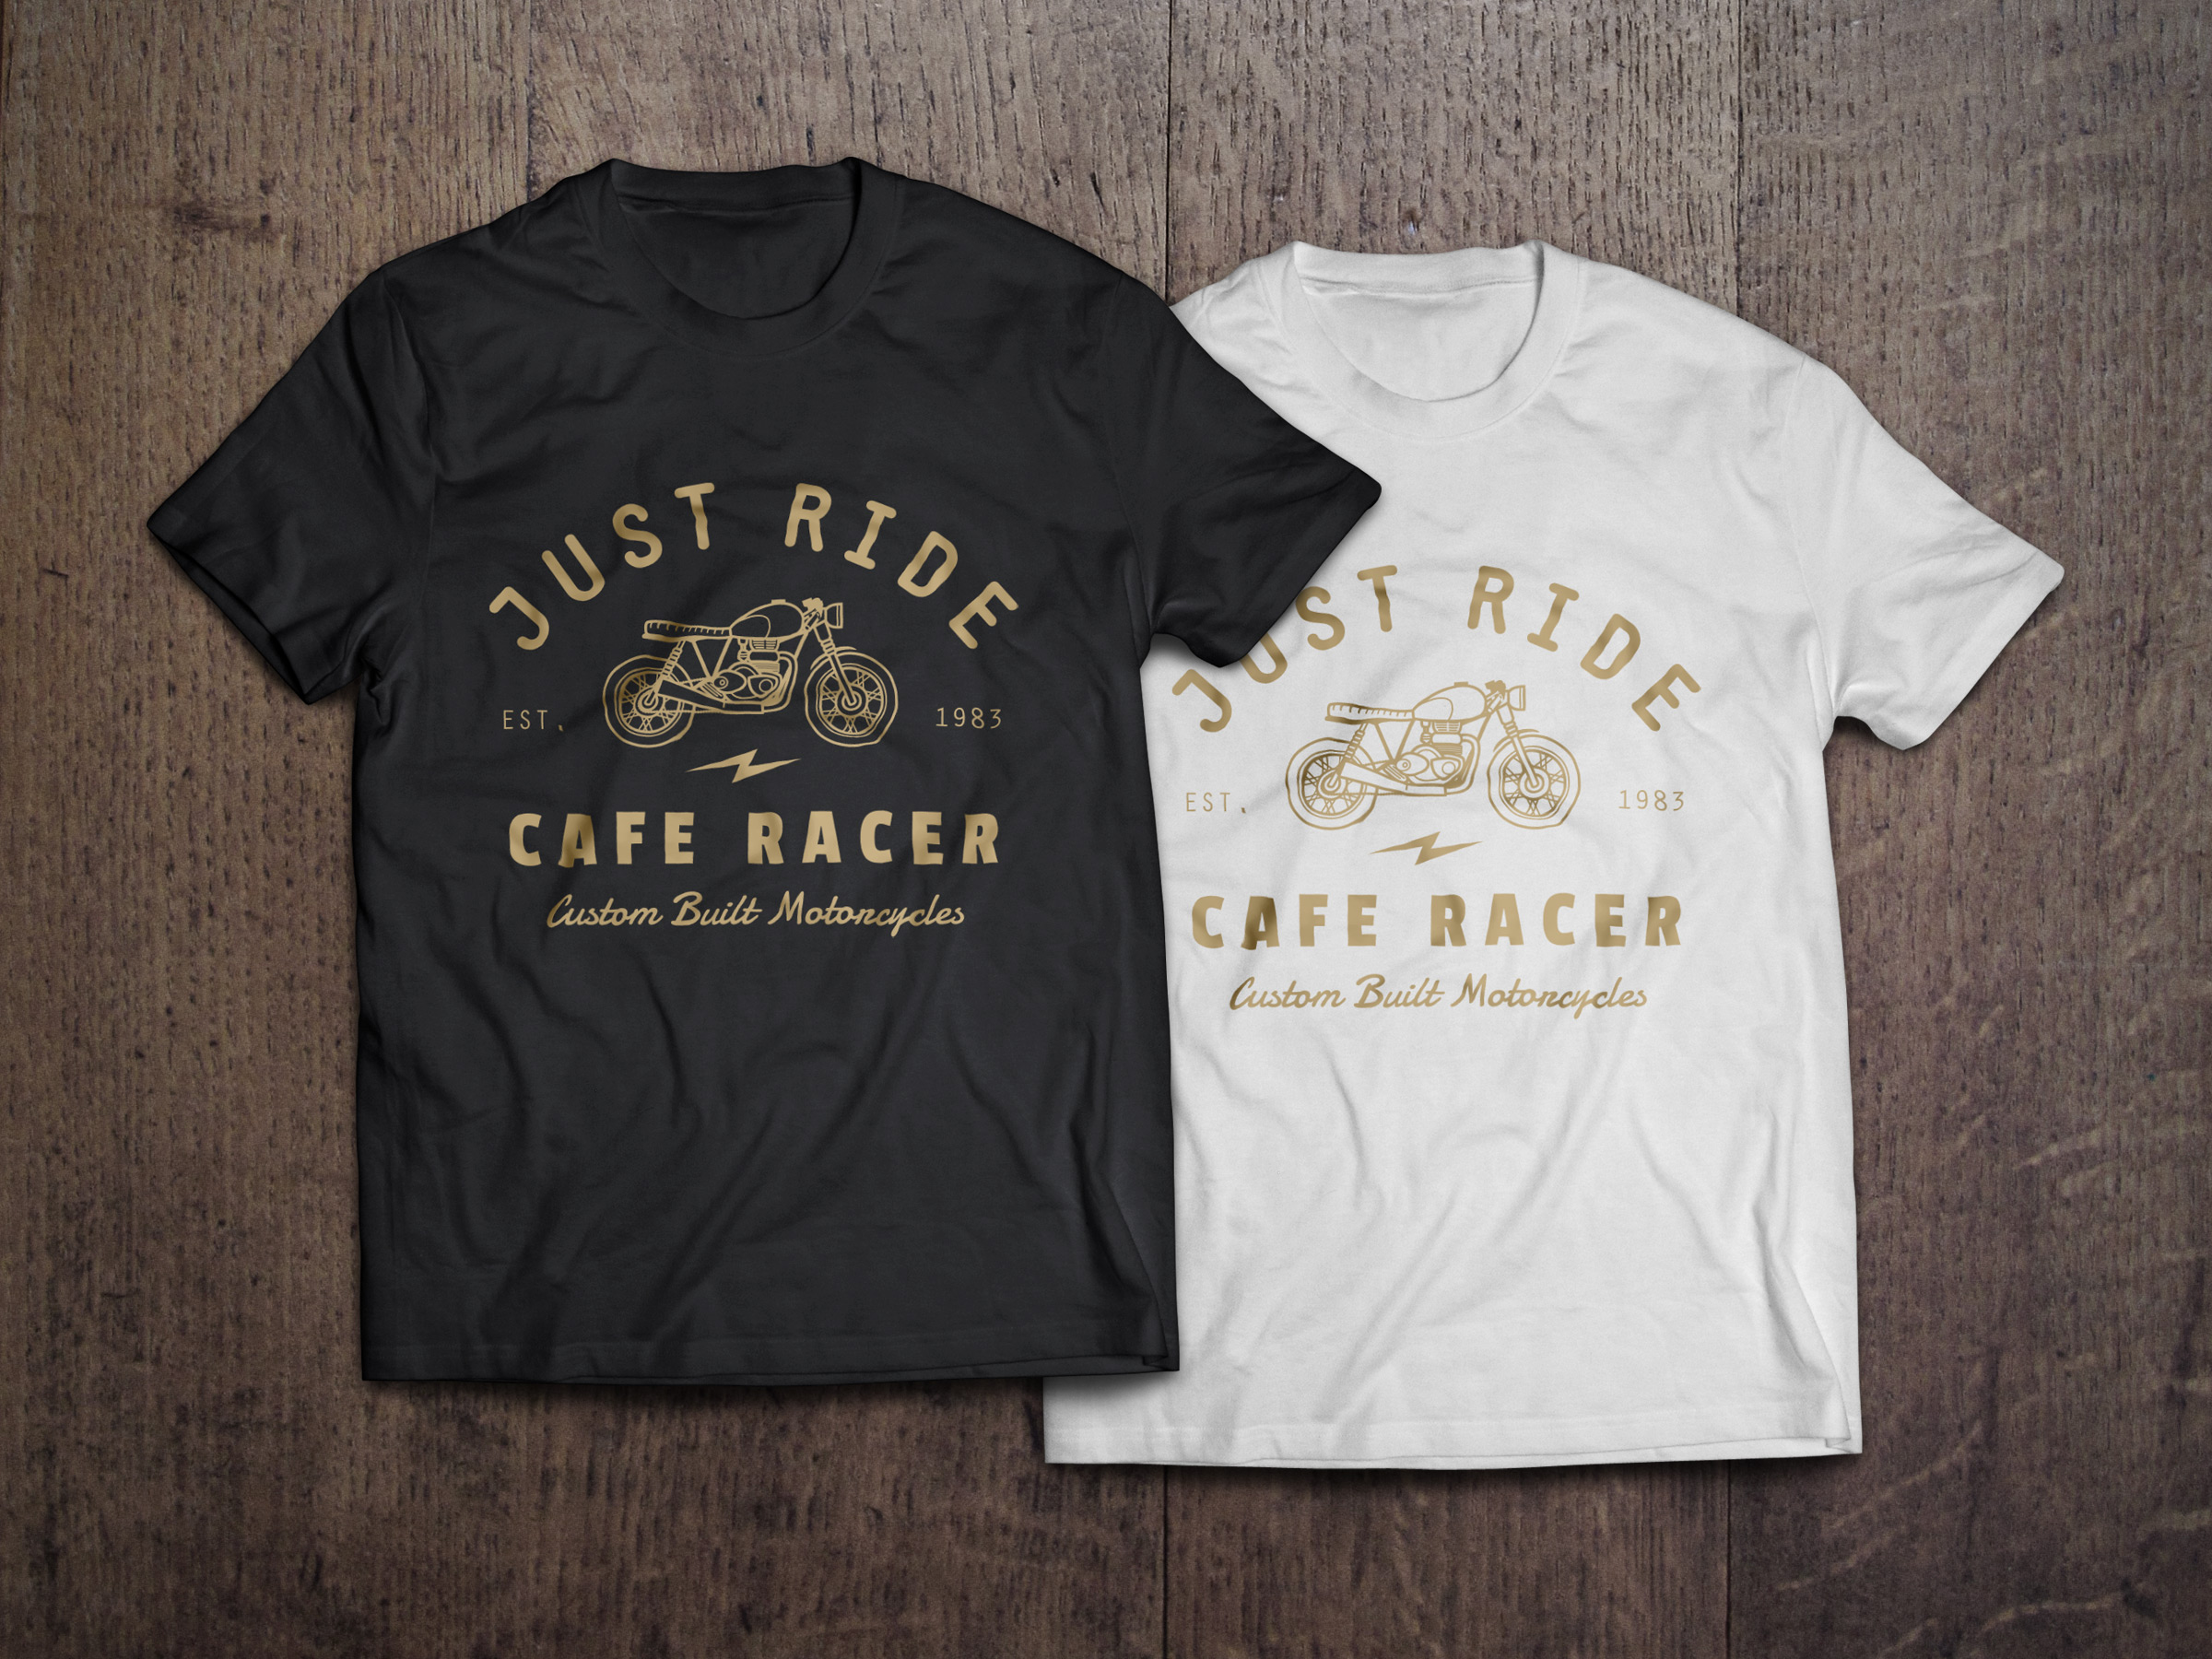 12 Photo Real T-Shirt Mock Up Images